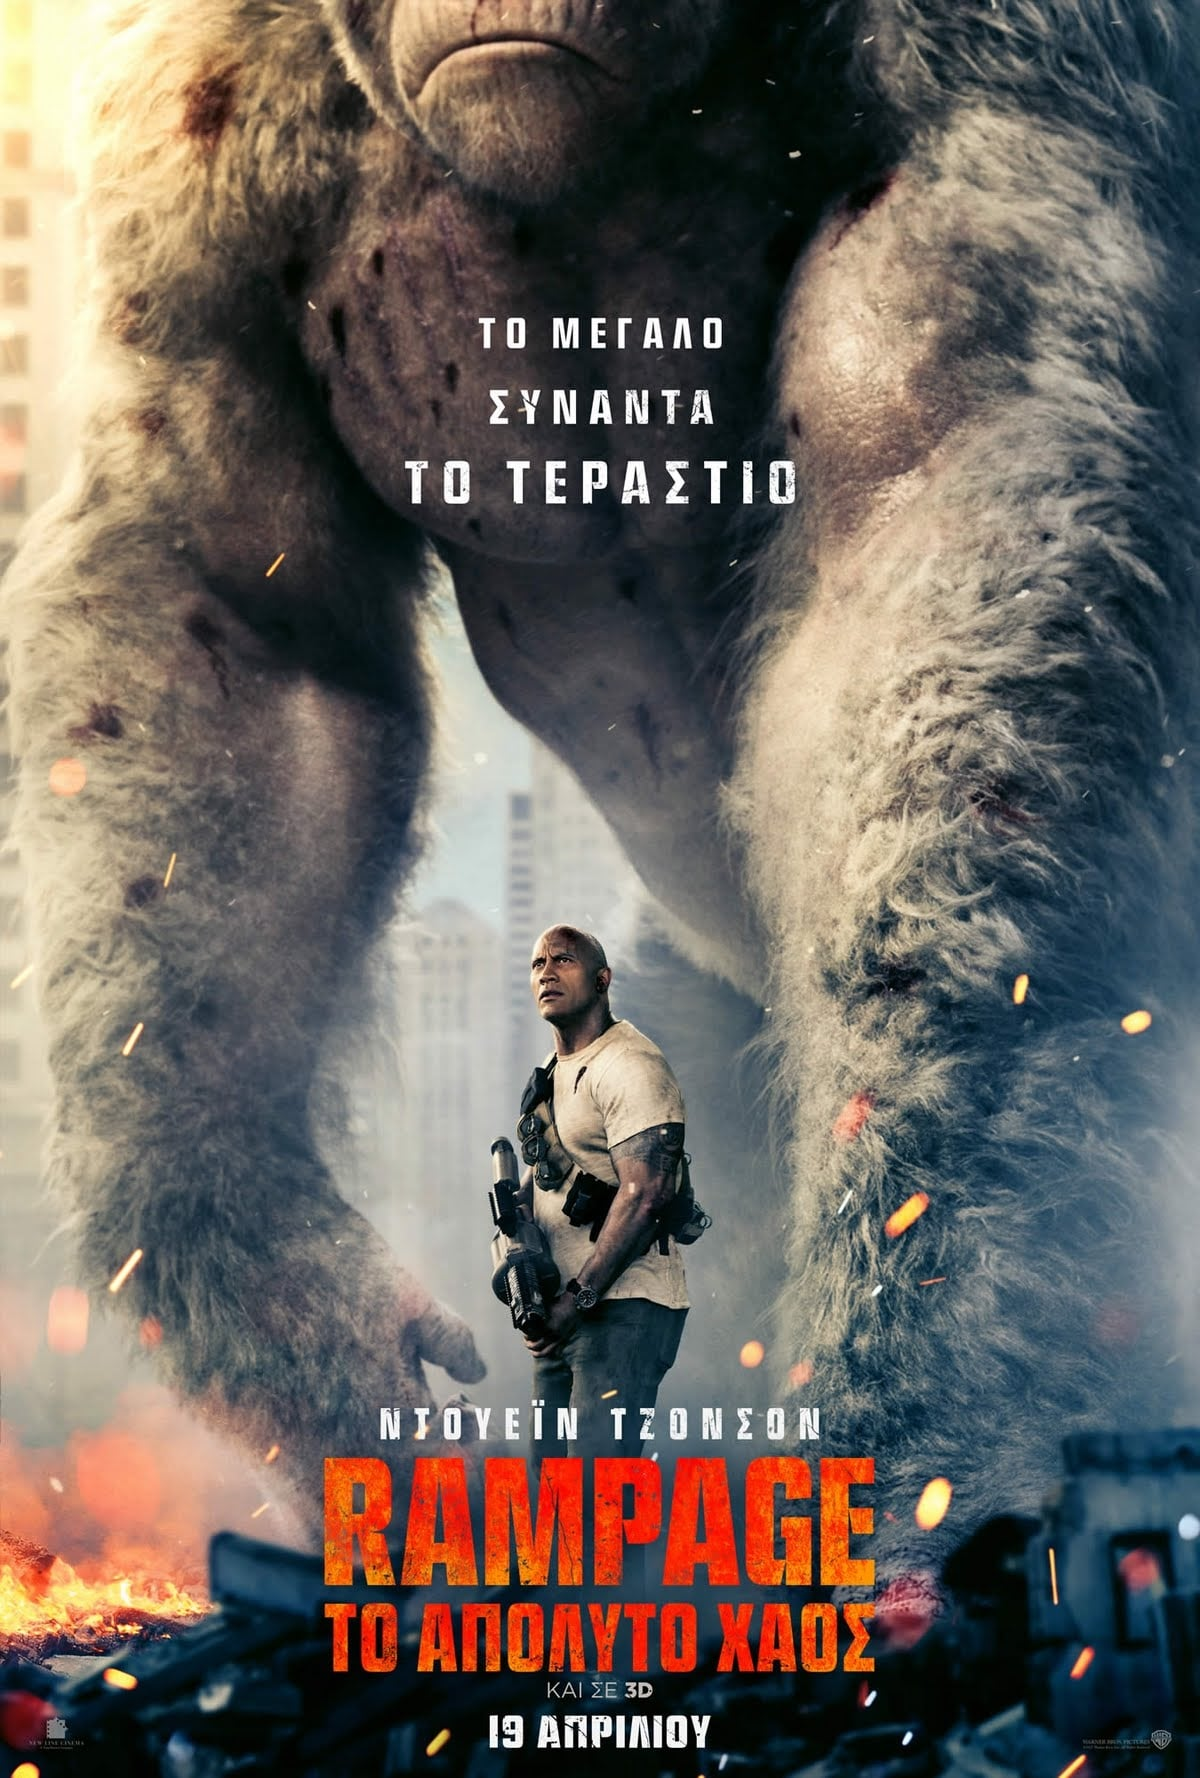 Poster and image movie Film Rampage: Scapati de sub control - Rampage - Rampage - Rampage -  ..20